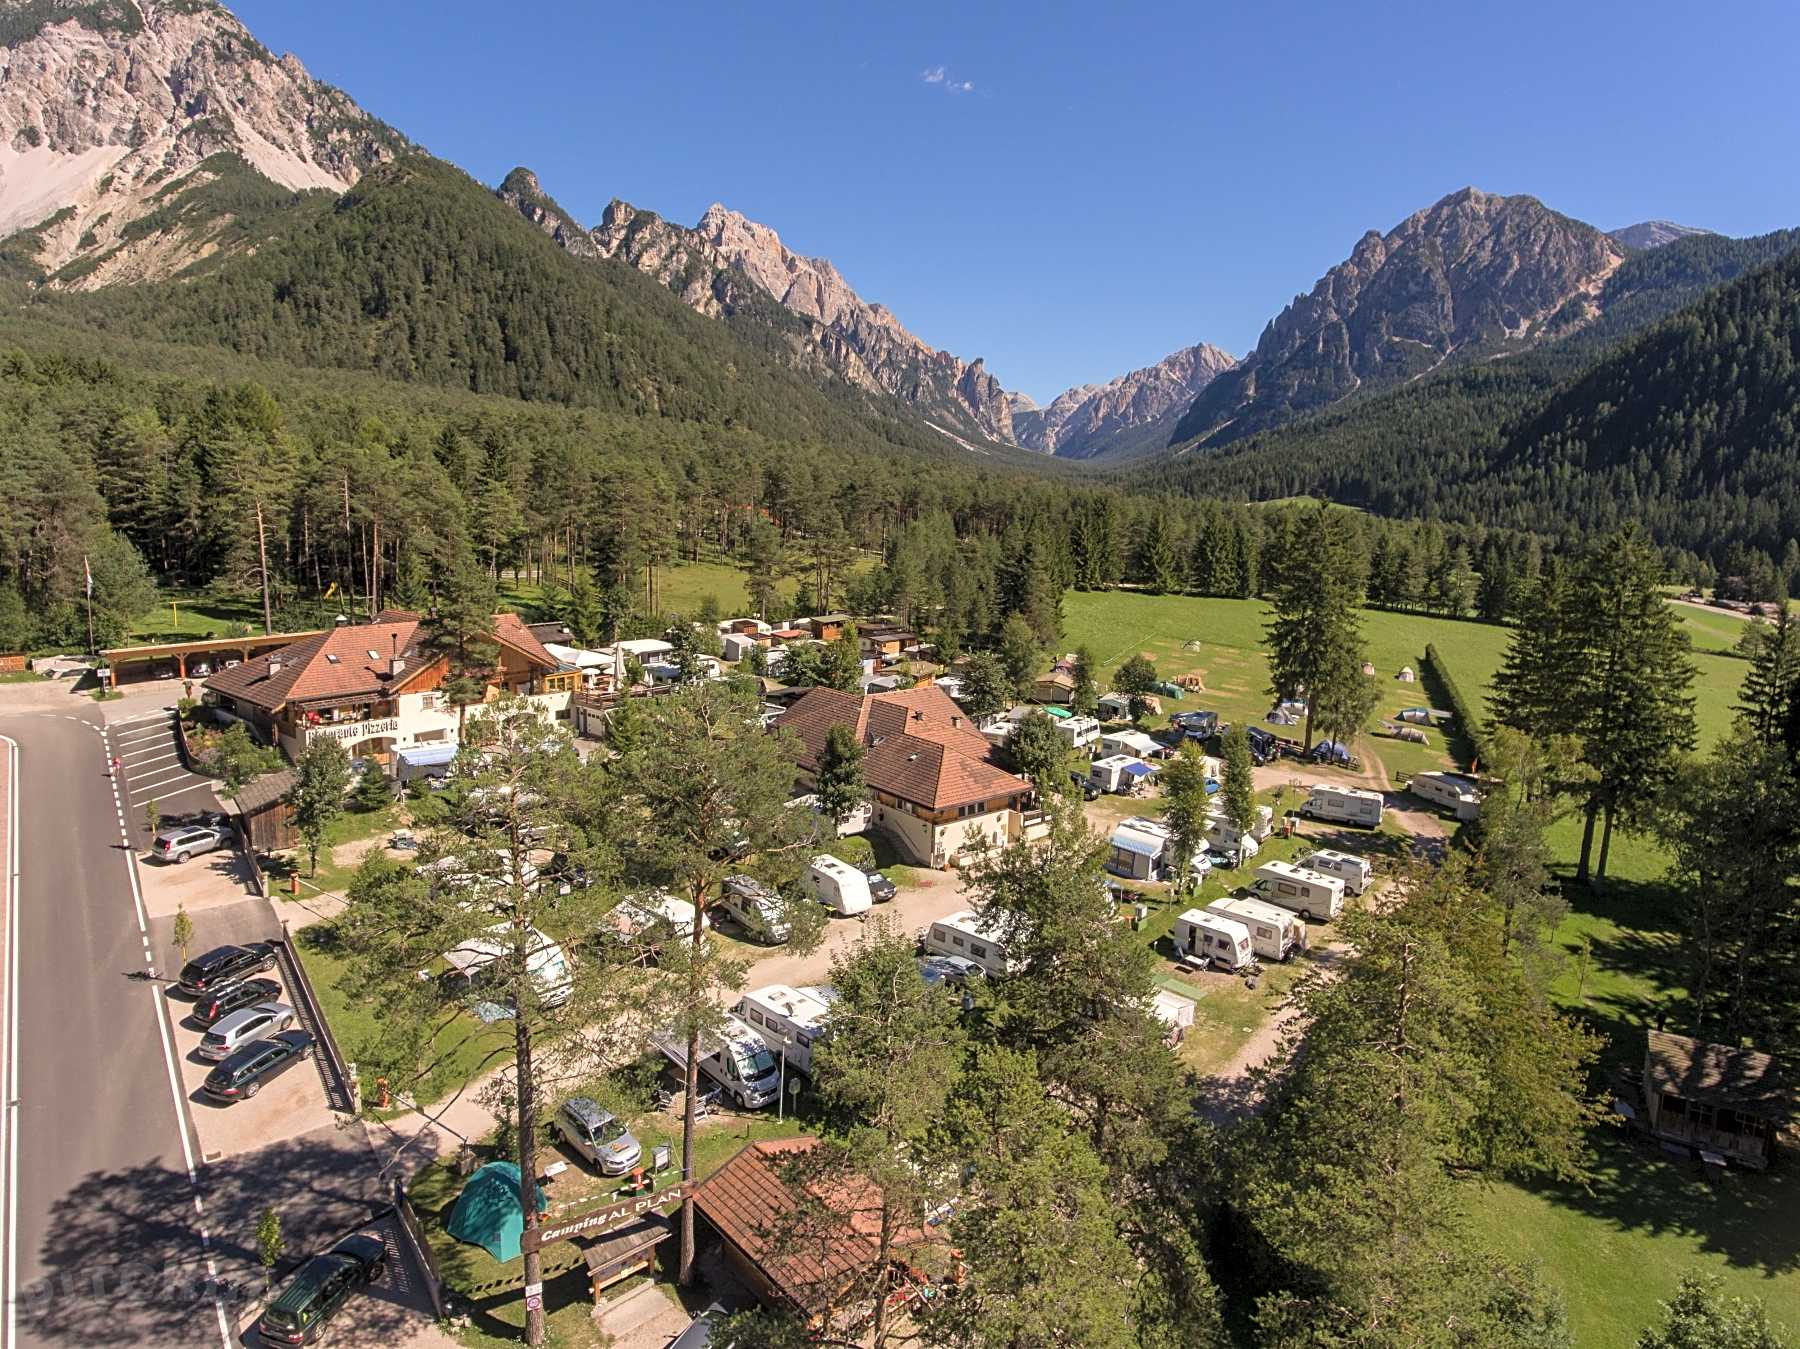 Tent Camping Sites in Bolzano